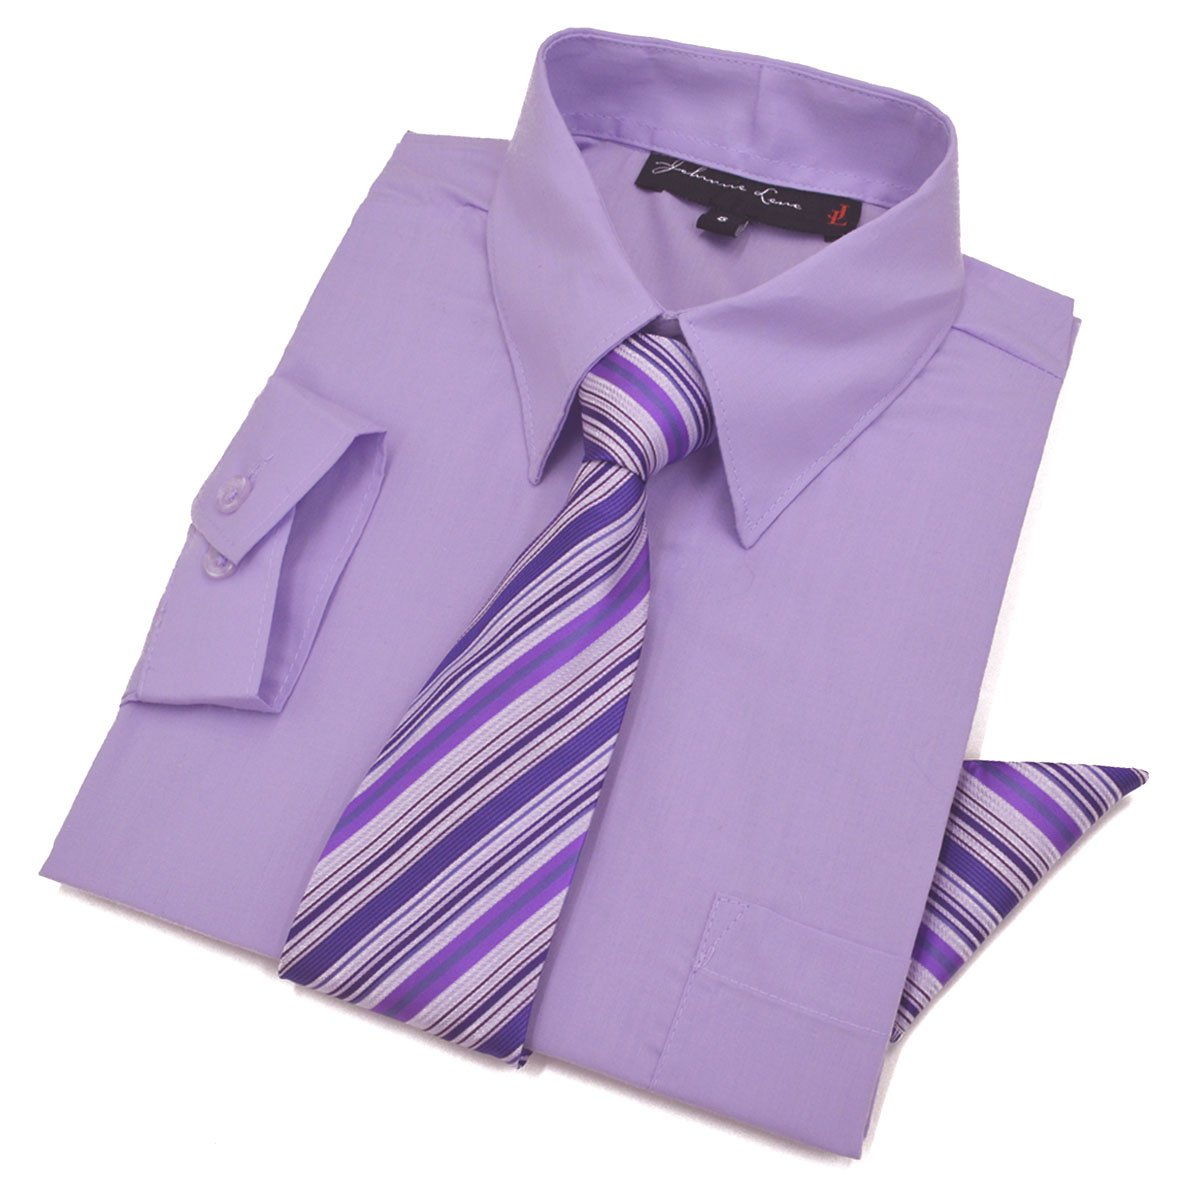 Boys Dress Shirt with Tie and Handkerchief #JL26 (3T, Lilac)